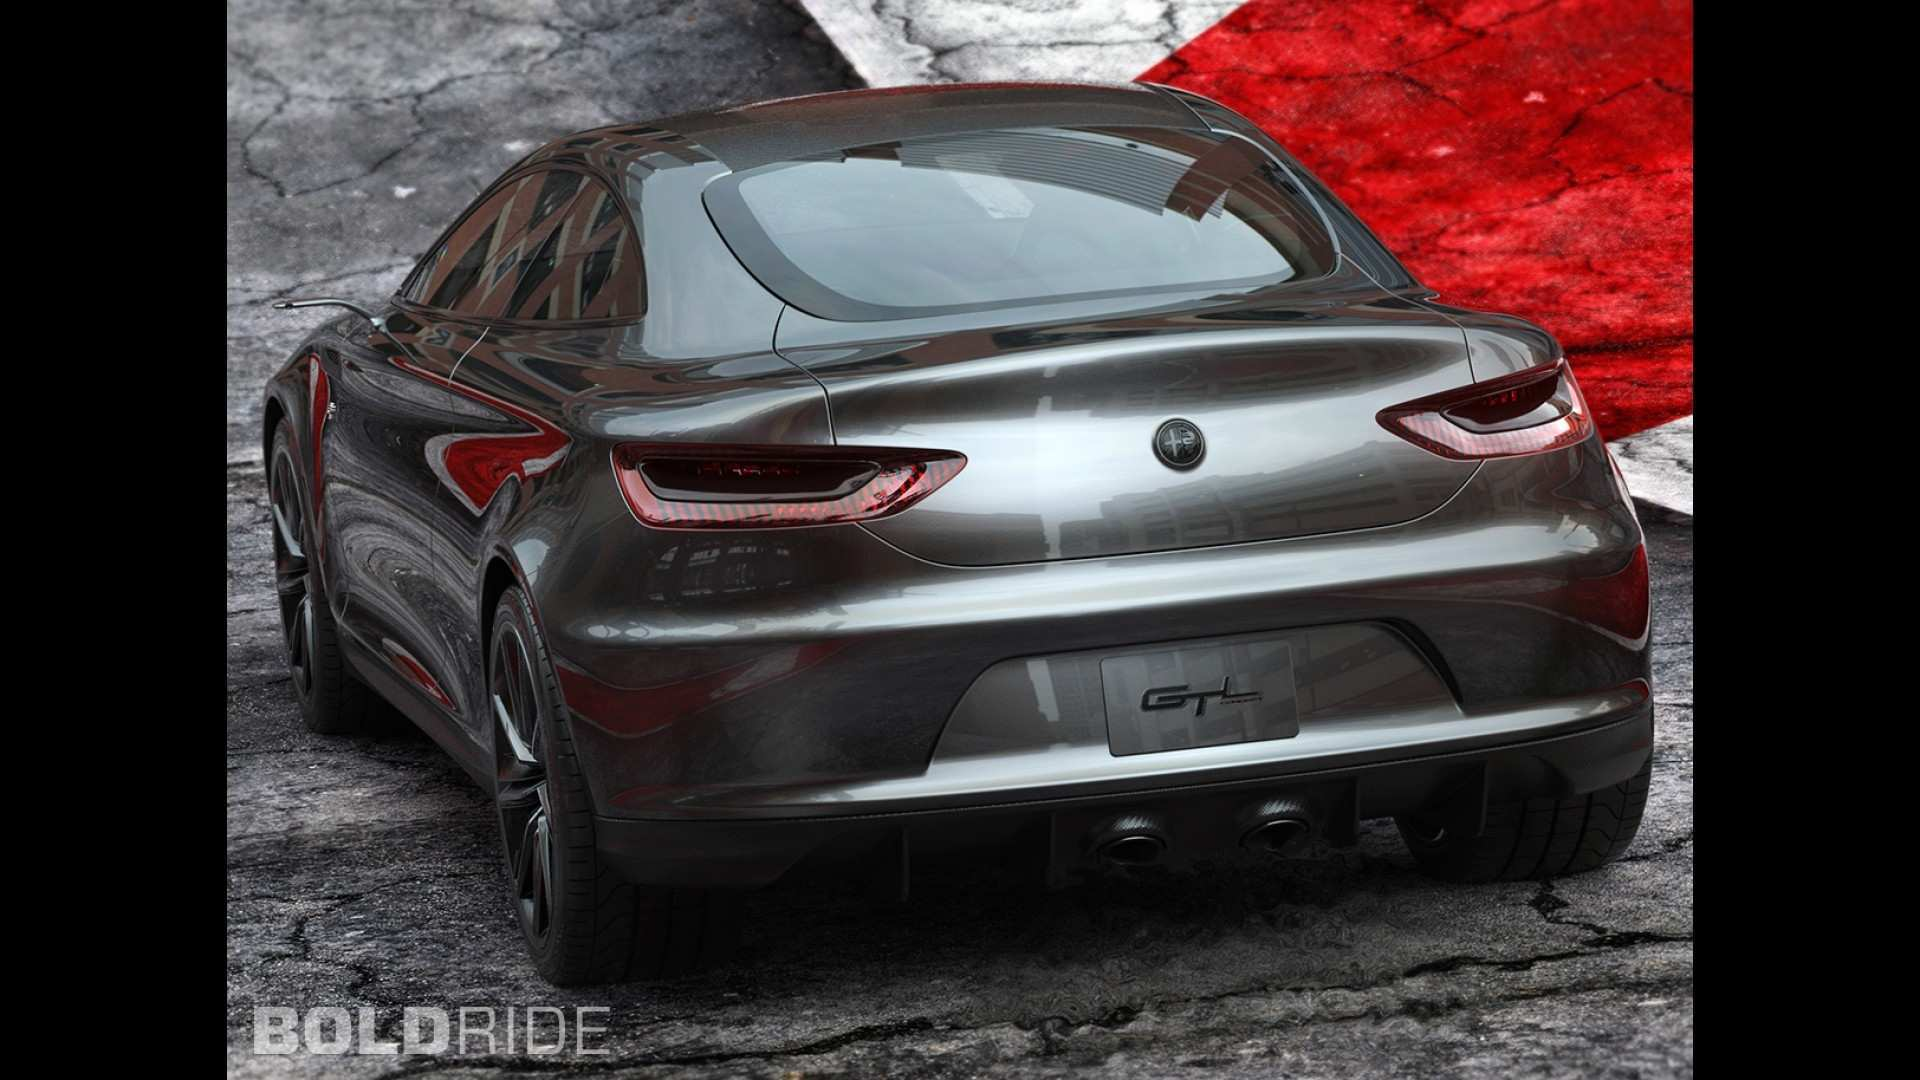 65 Concept of 2020 Alfa Romeo Models Research New by 2020 Alfa Romeo Models